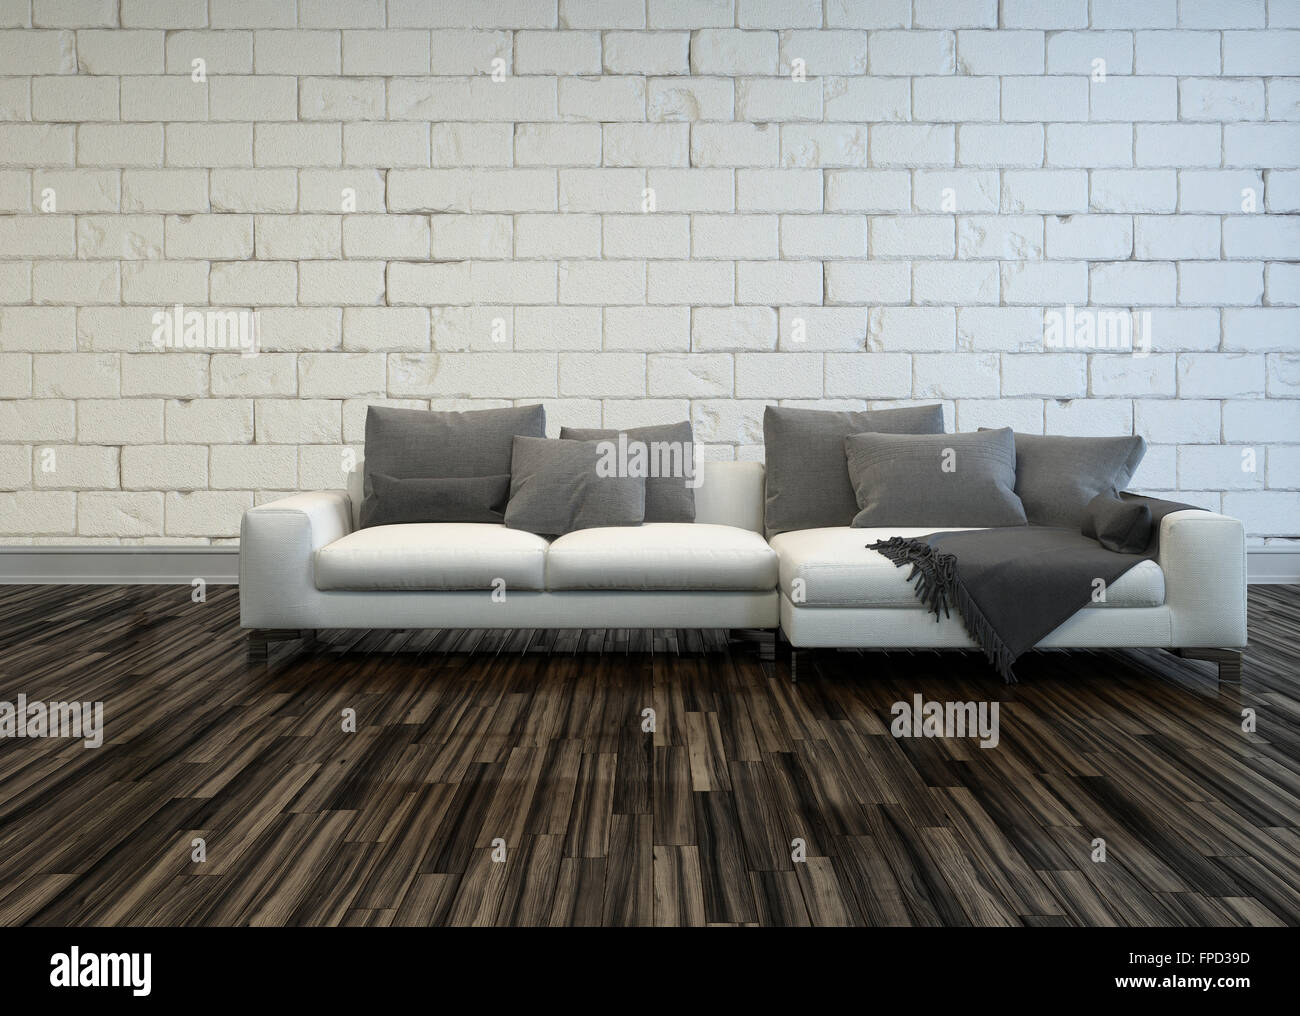 Rustic living room interior with a large white sofa with grey cushions on a bare wooden parquet floor against a Stock Photo